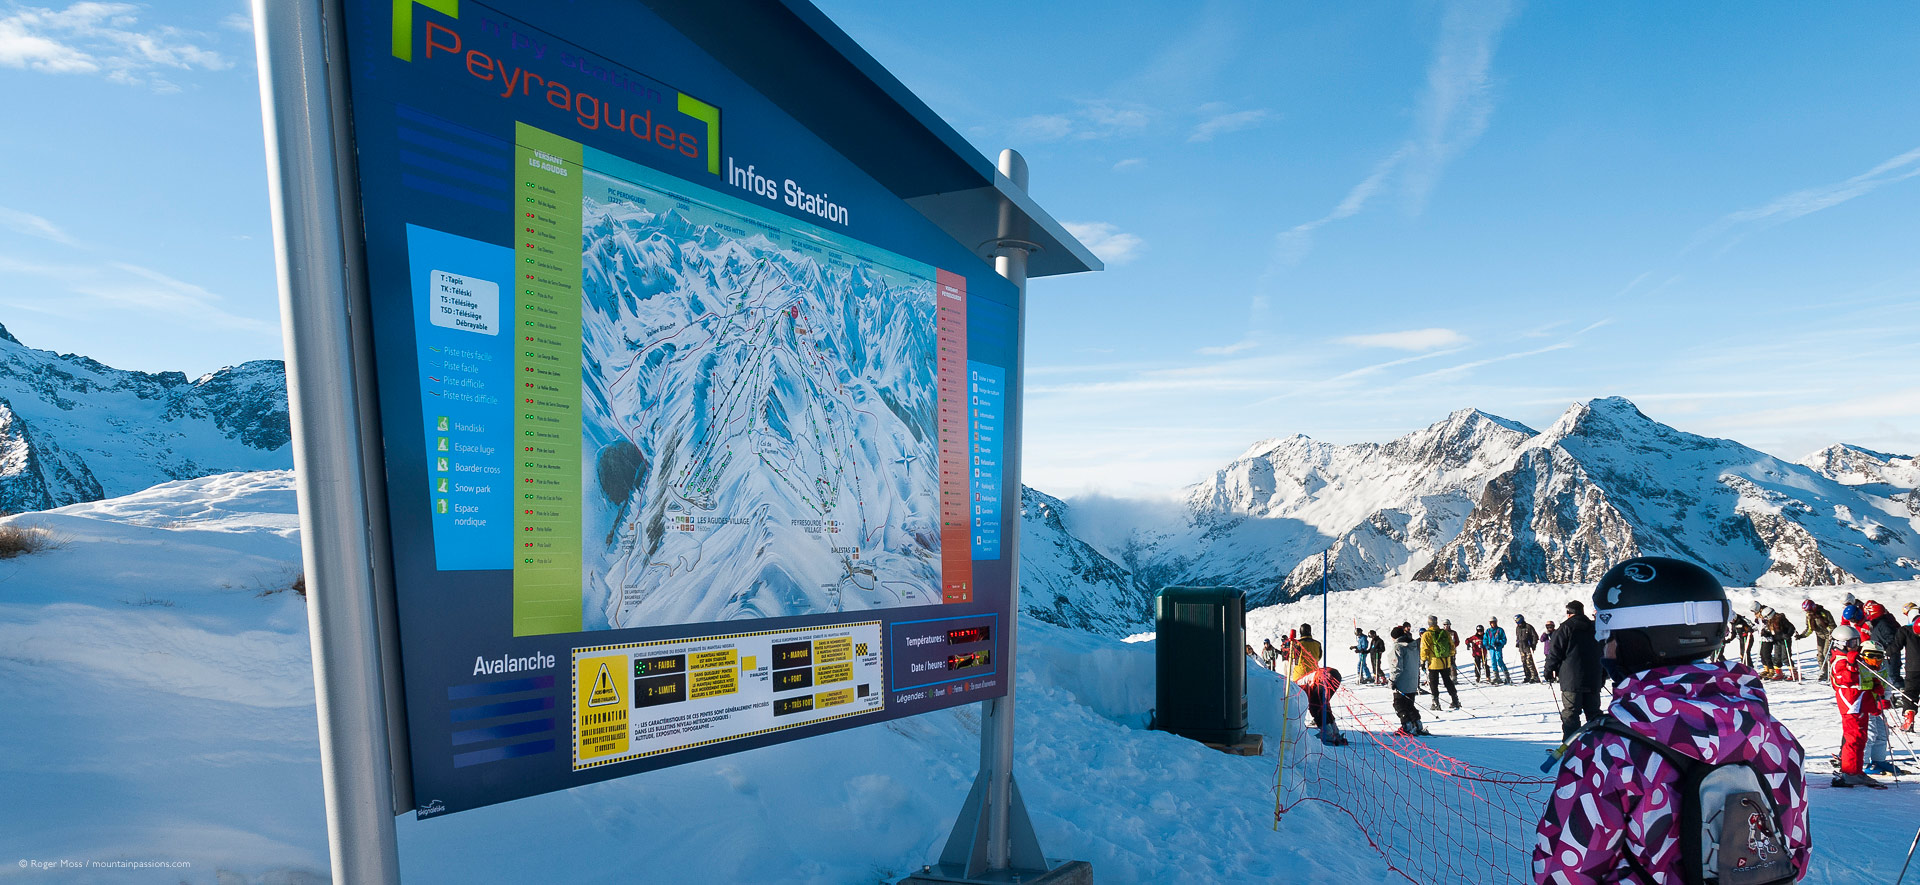 Young skier beside piste map sign.